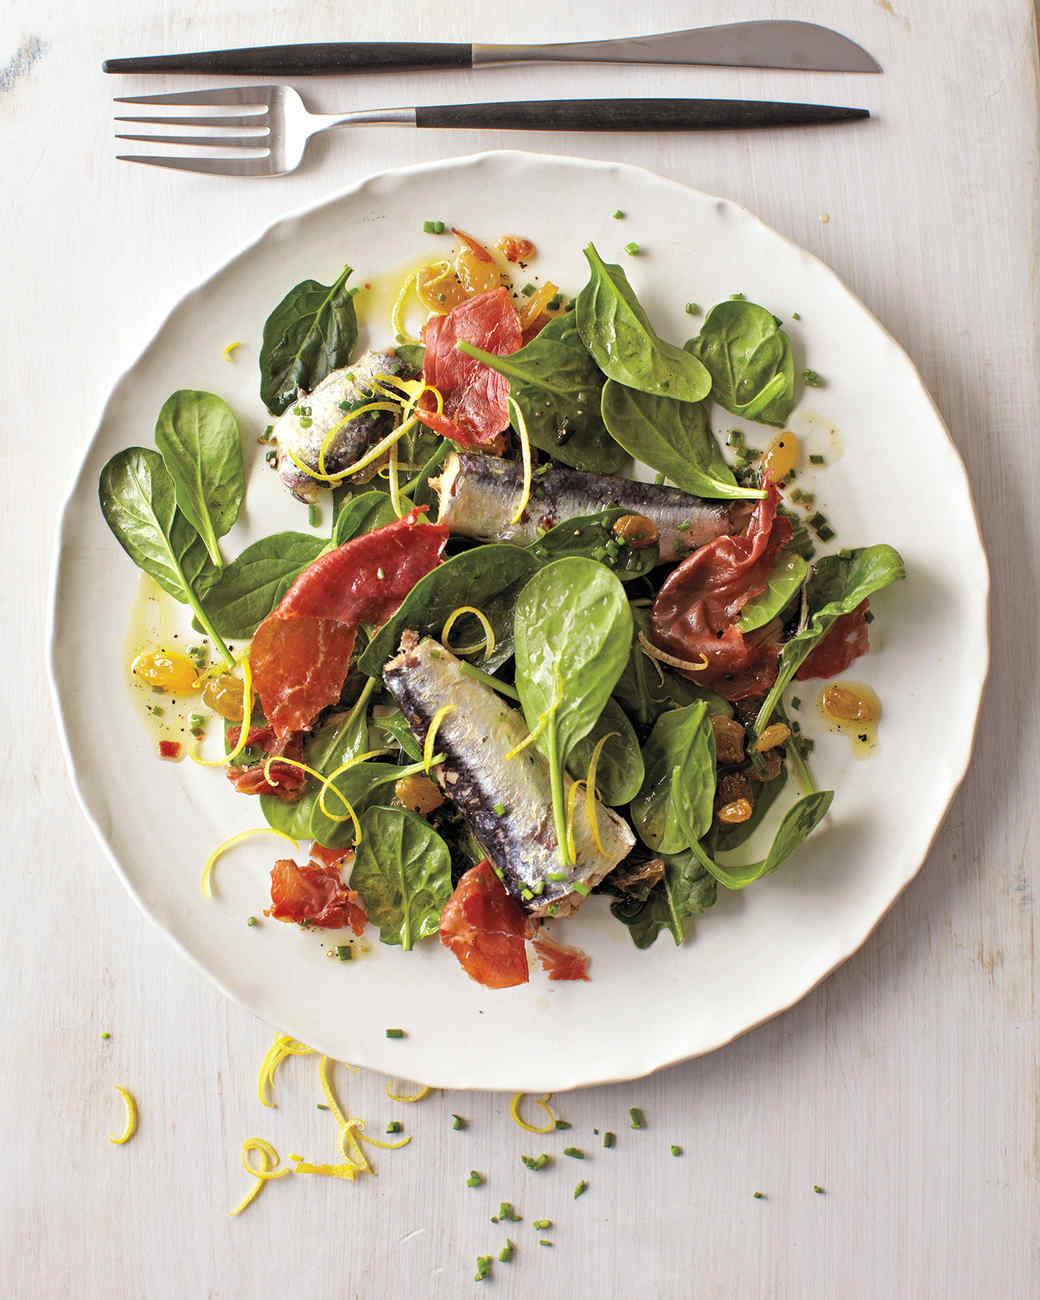 Spinach salad with sardines and crispy prosciutto for Salas lunchs